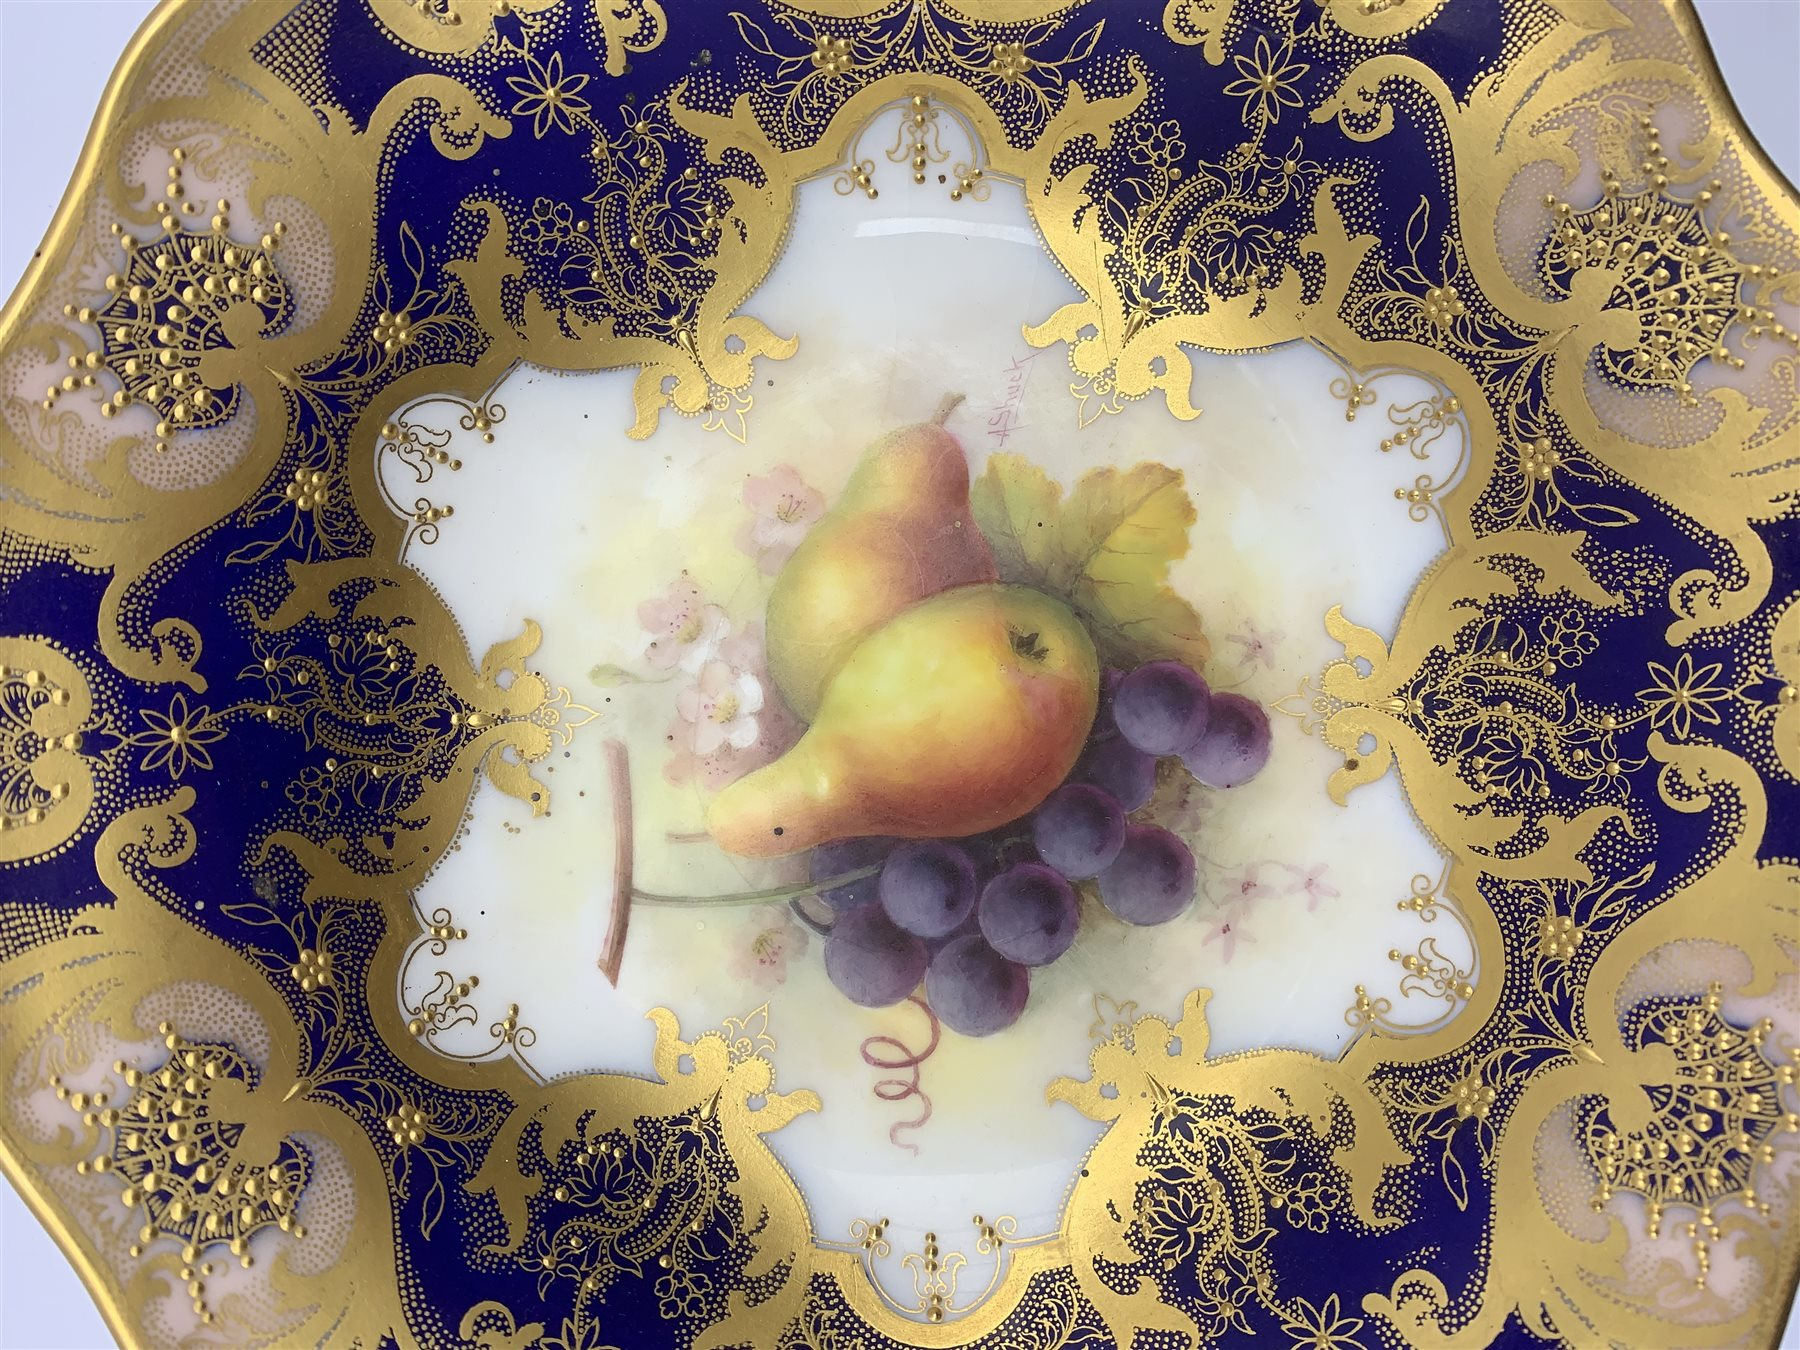 Royal Worcester porcelain twin-handled comport painted by Albert Shuck, signed, with grapes and pear - Image 2 of 7